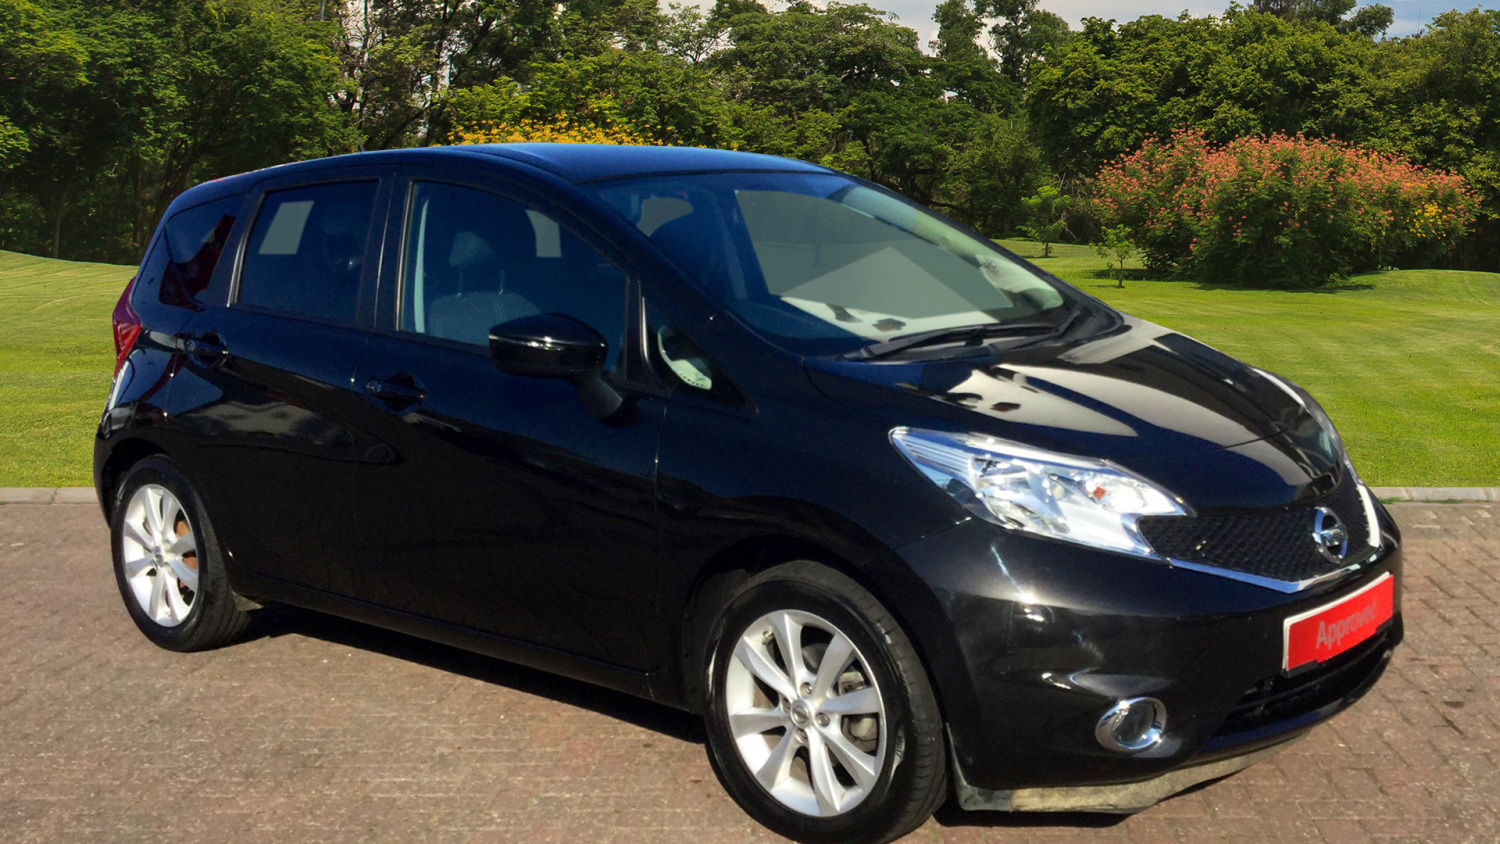 used nissan note 1 2 dig s acenta premium 5dr auto petrol hatchback for sale in scotland. Black Bedroom Furniture Sets. Home Design Ideas